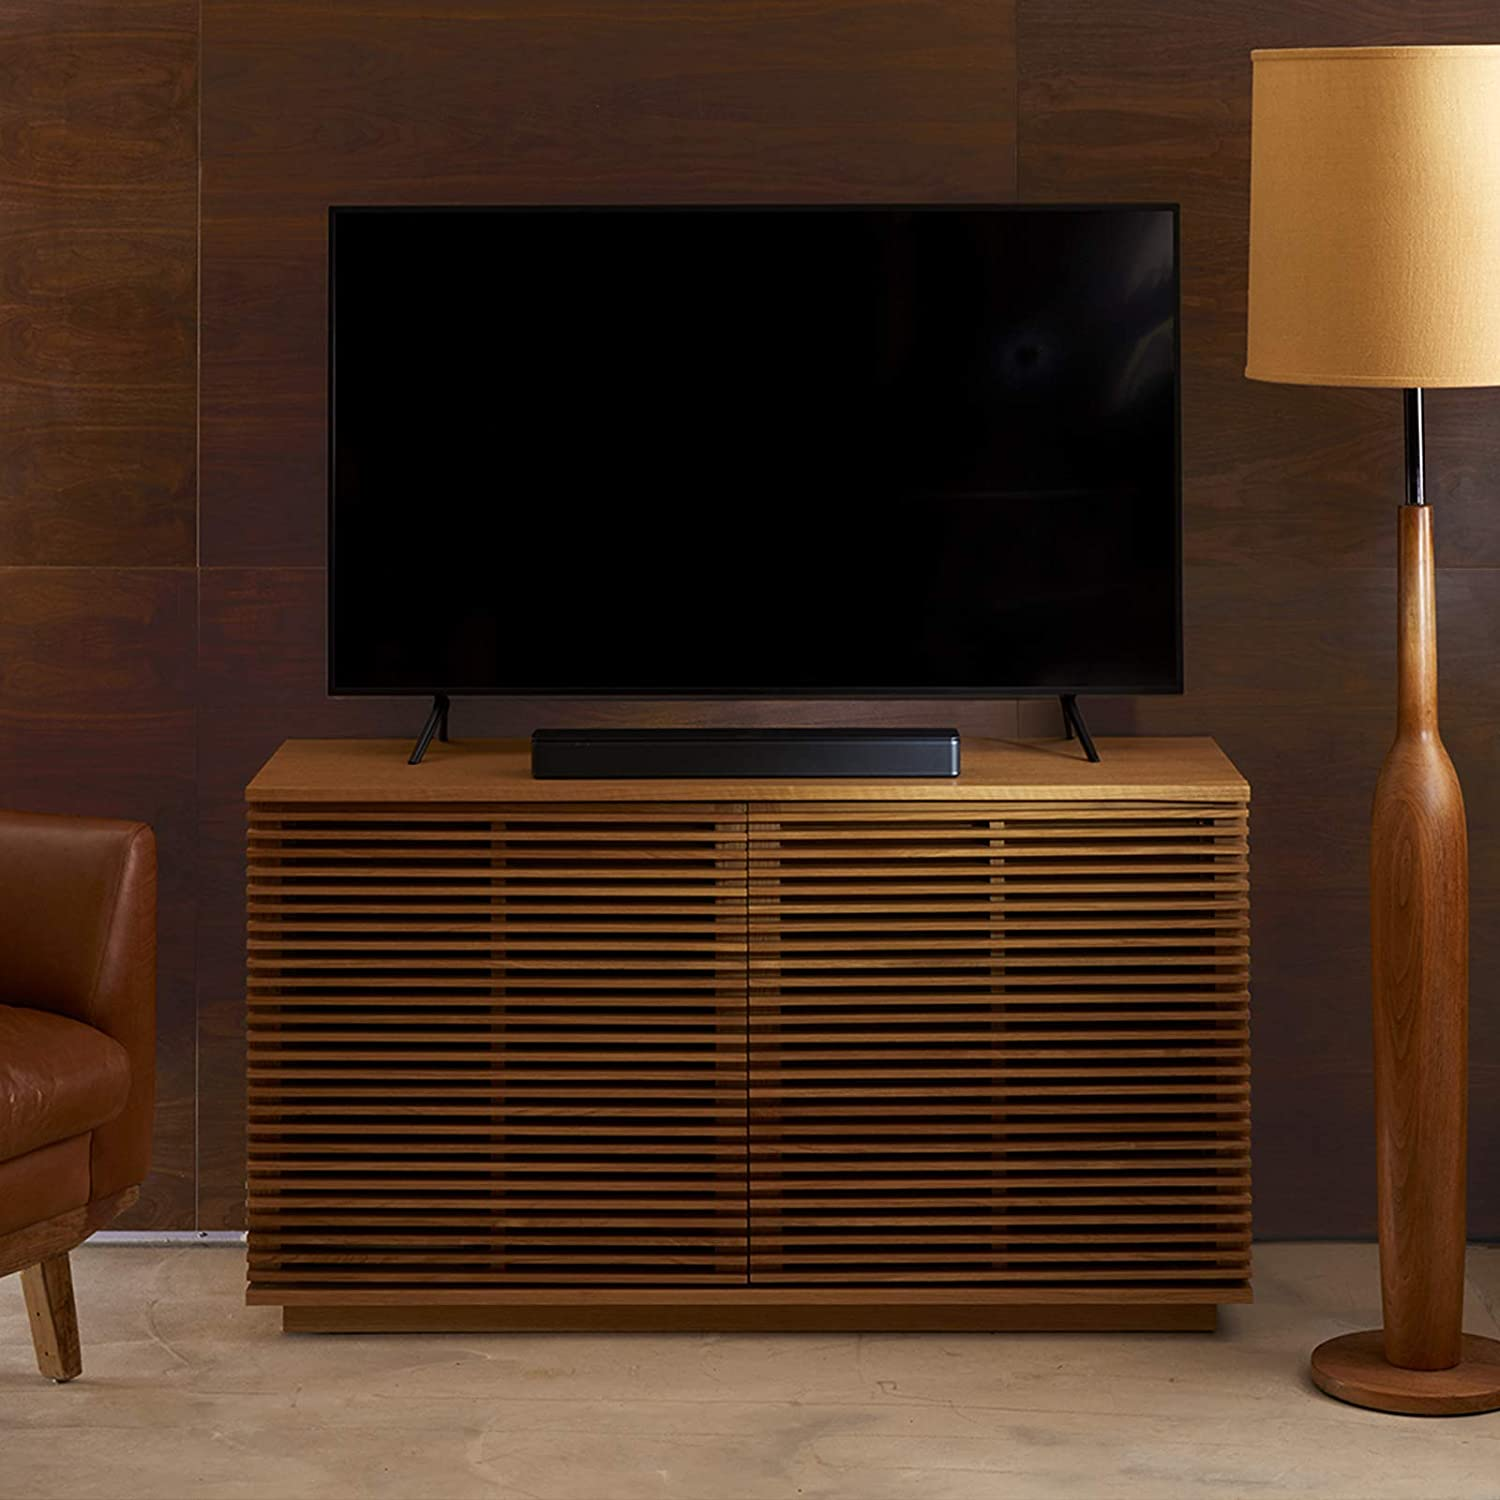 Bose TV speaker in a wooden cabinet